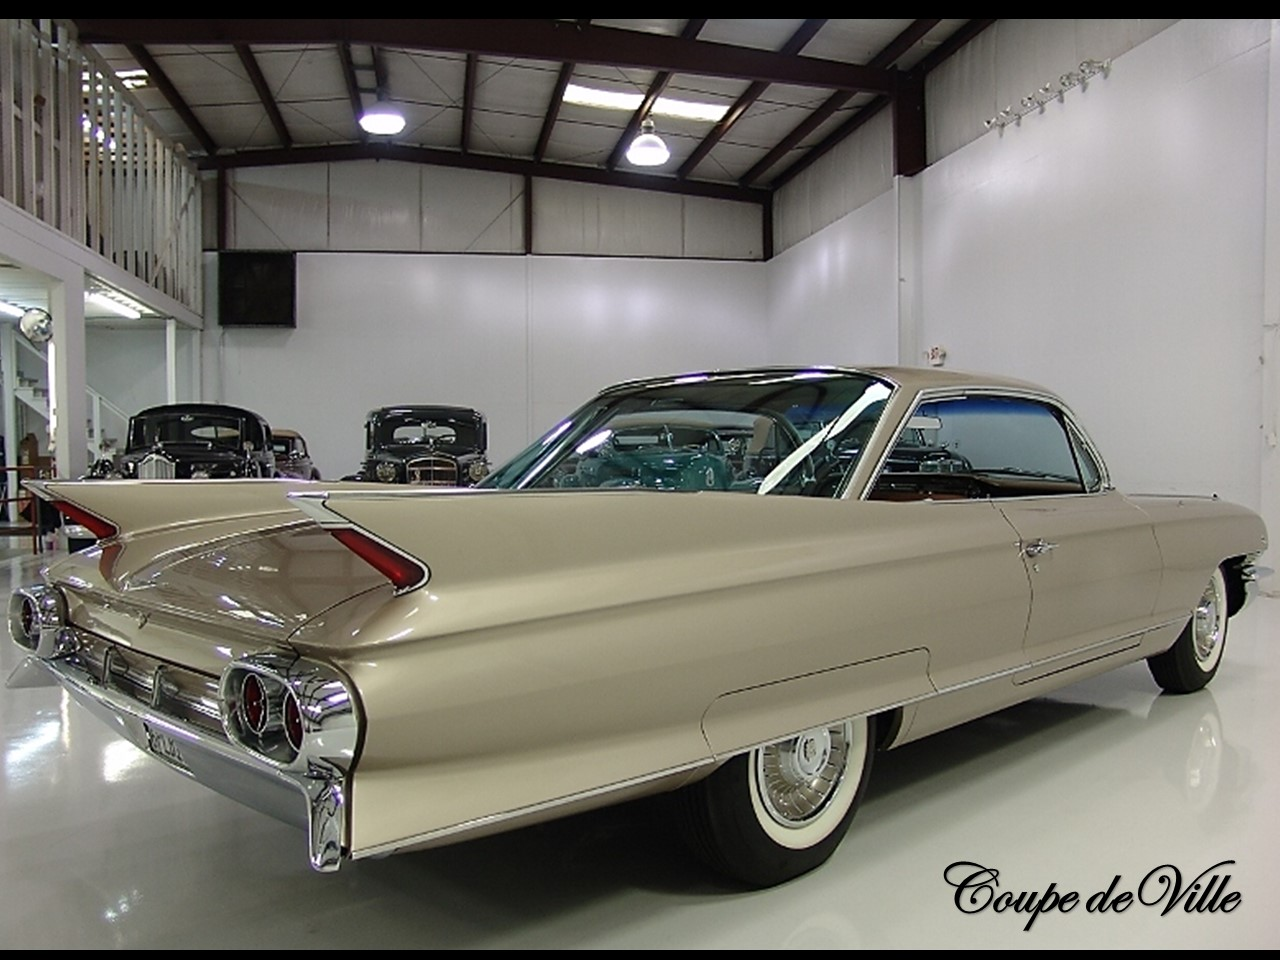 1961 Cadillac Series 6300 Coupe Deville Notoriousluxury Sedan The Was A Trend Setting Motorcar It Even More Intriguing For Its Basic Structure Increased Rigidity Had Greater Roominess